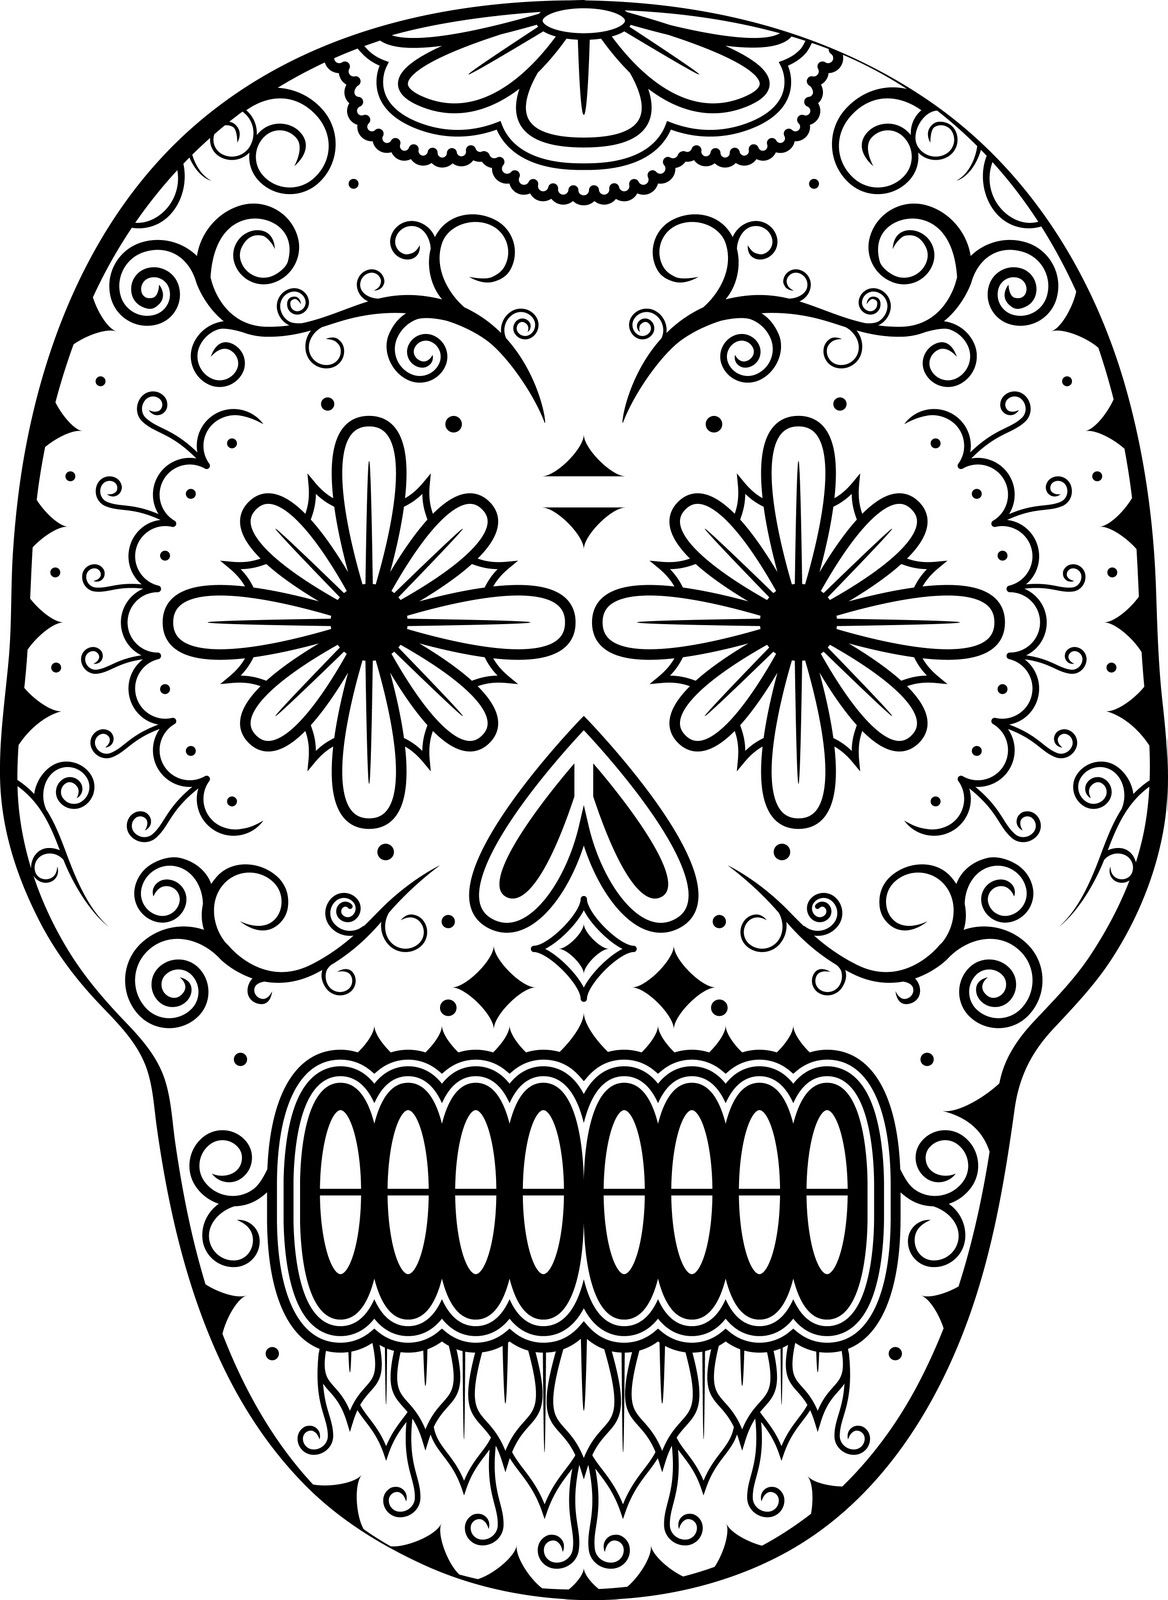 Day of the dead coloring page adult coloring therapy for All souls day coloring pages